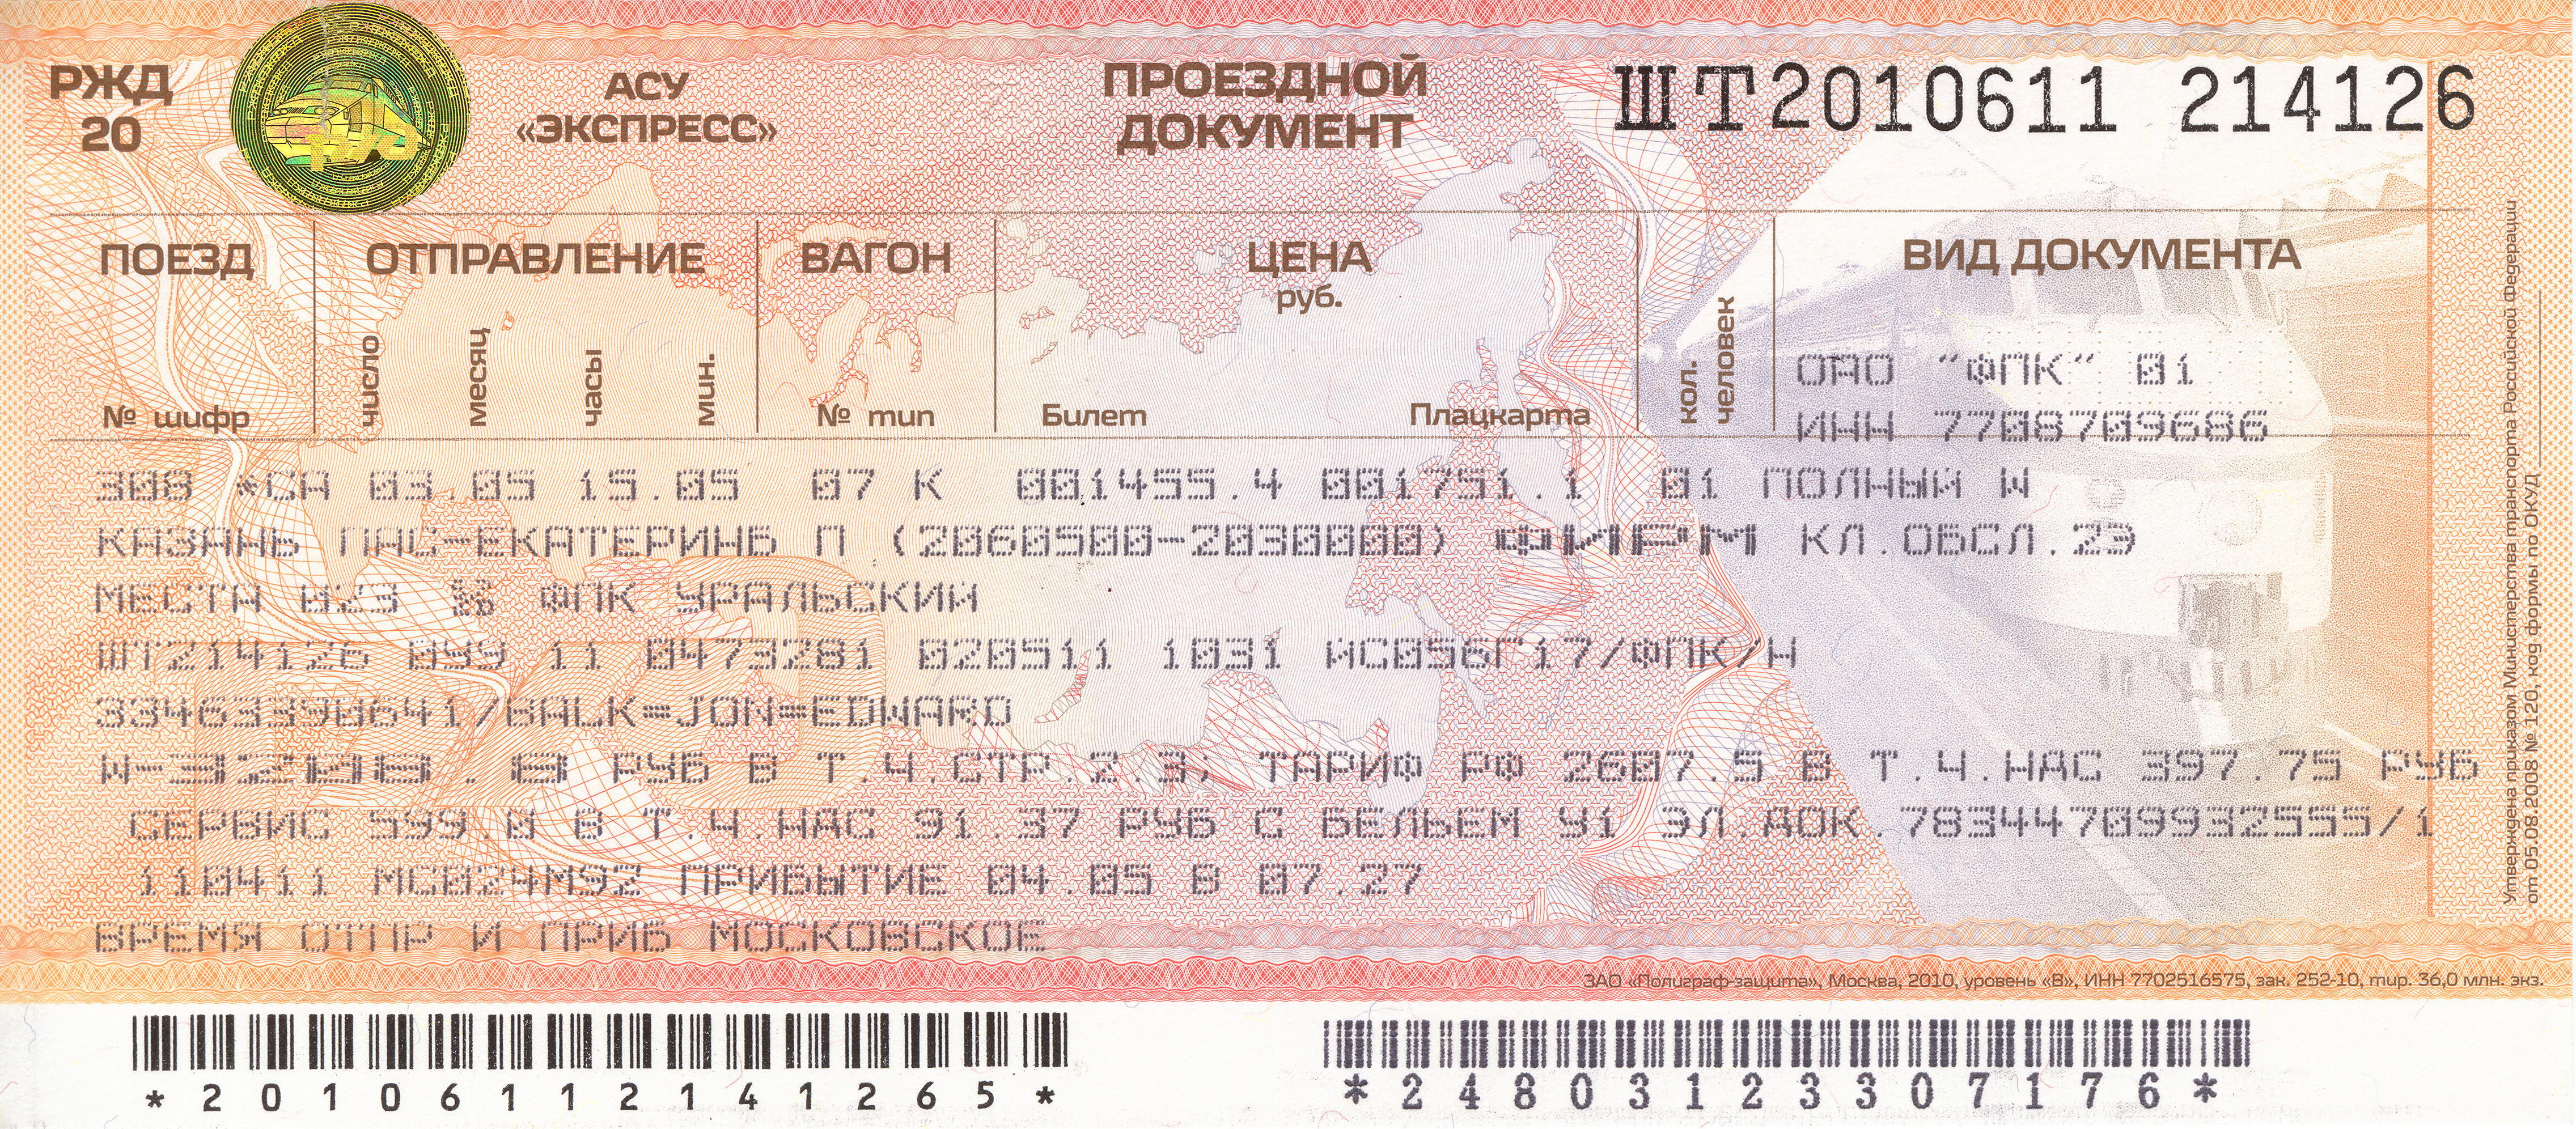 Train Ticket from Kazan to Yekaterinburg